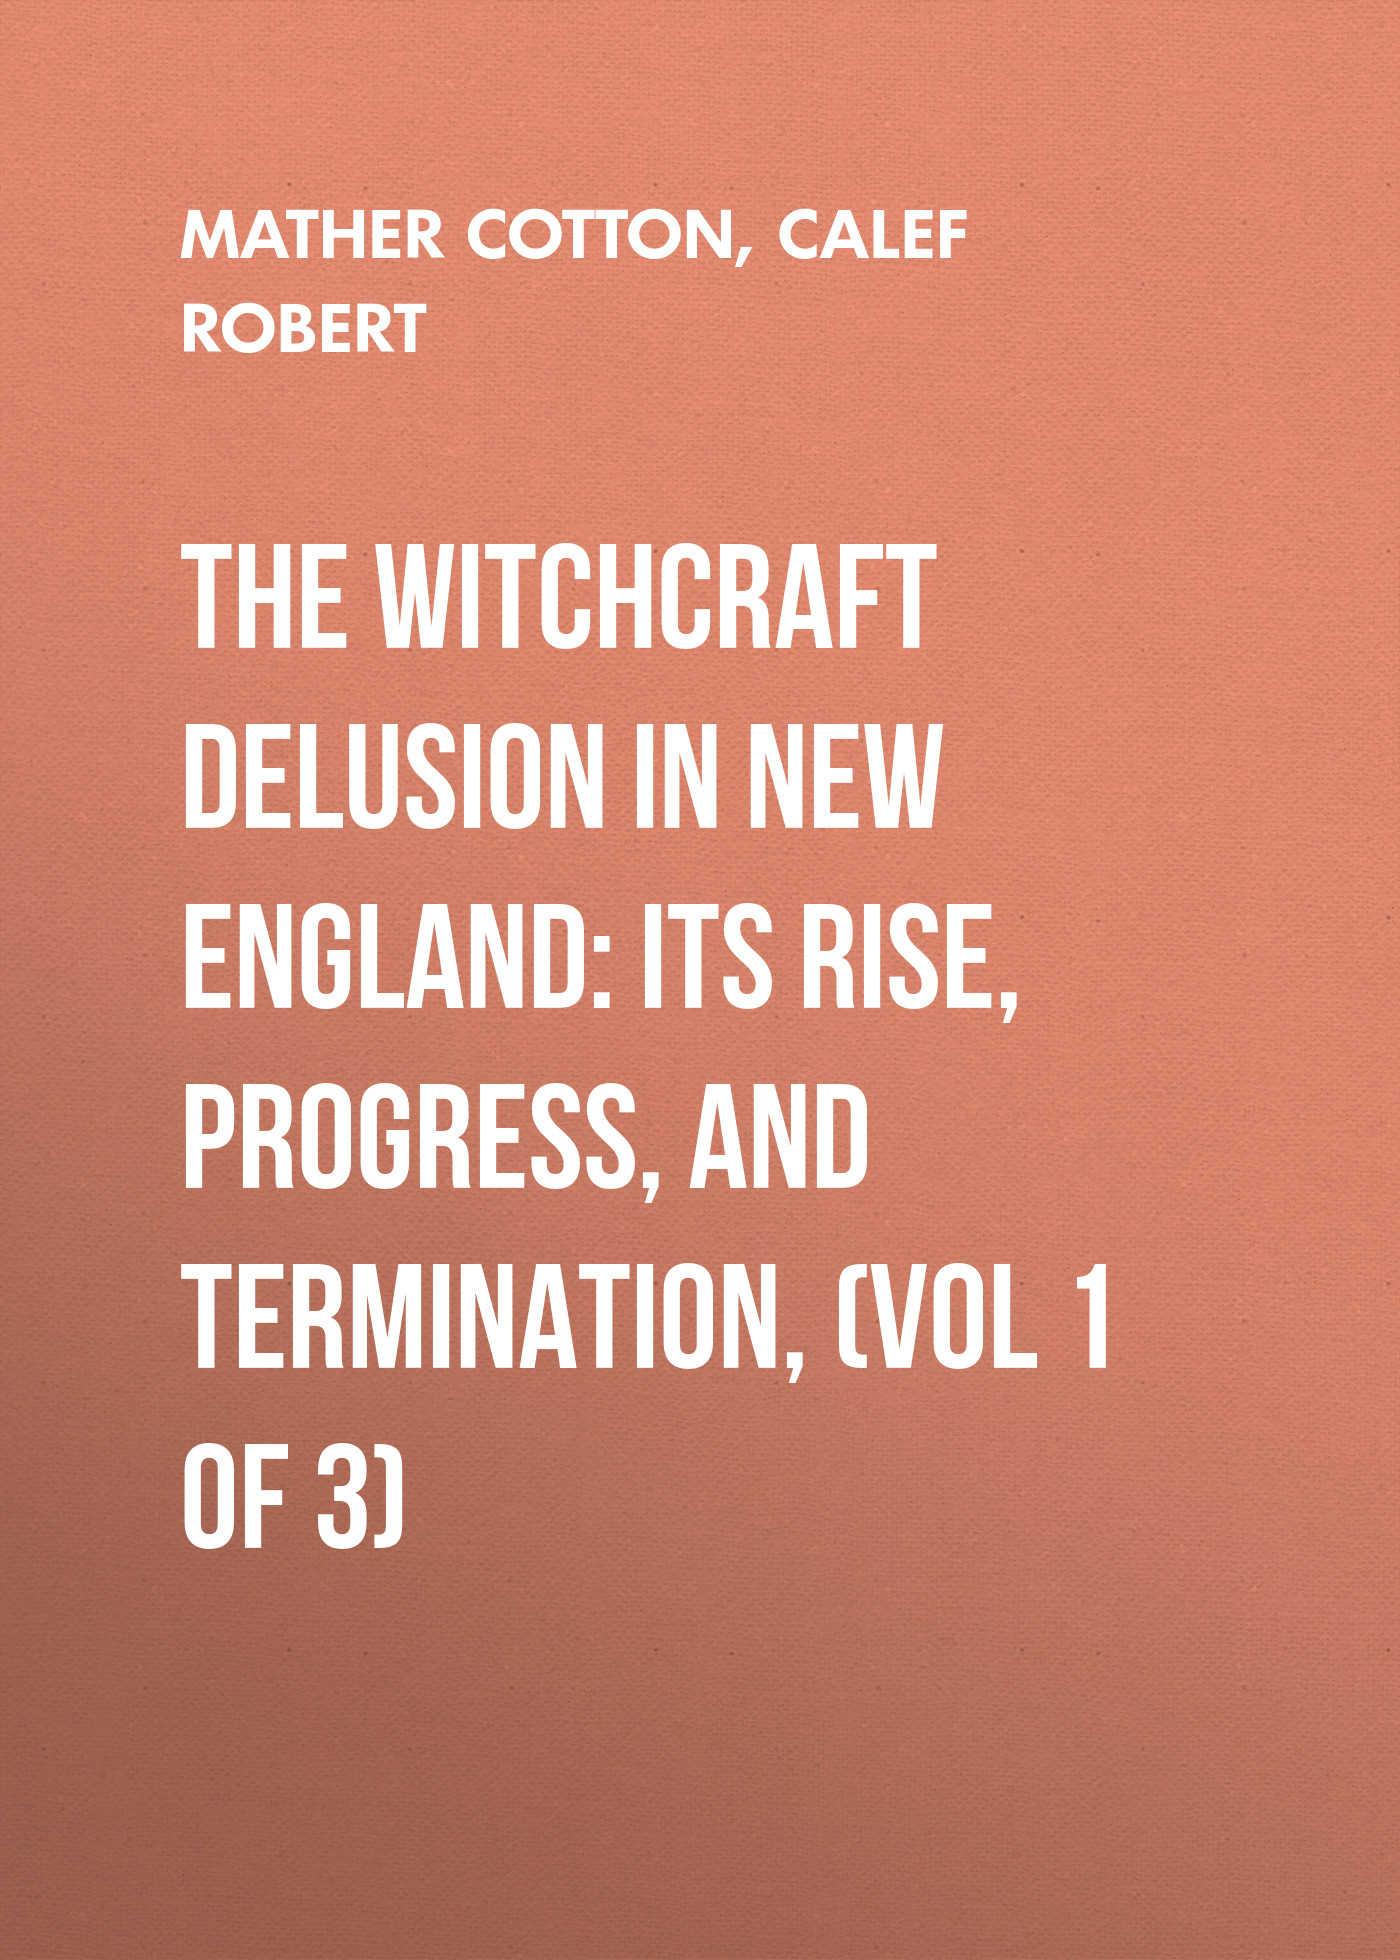 The Witchcraft Delusion in New England: Its Rise, Progress, and Termination, (Vol 1 of 3)